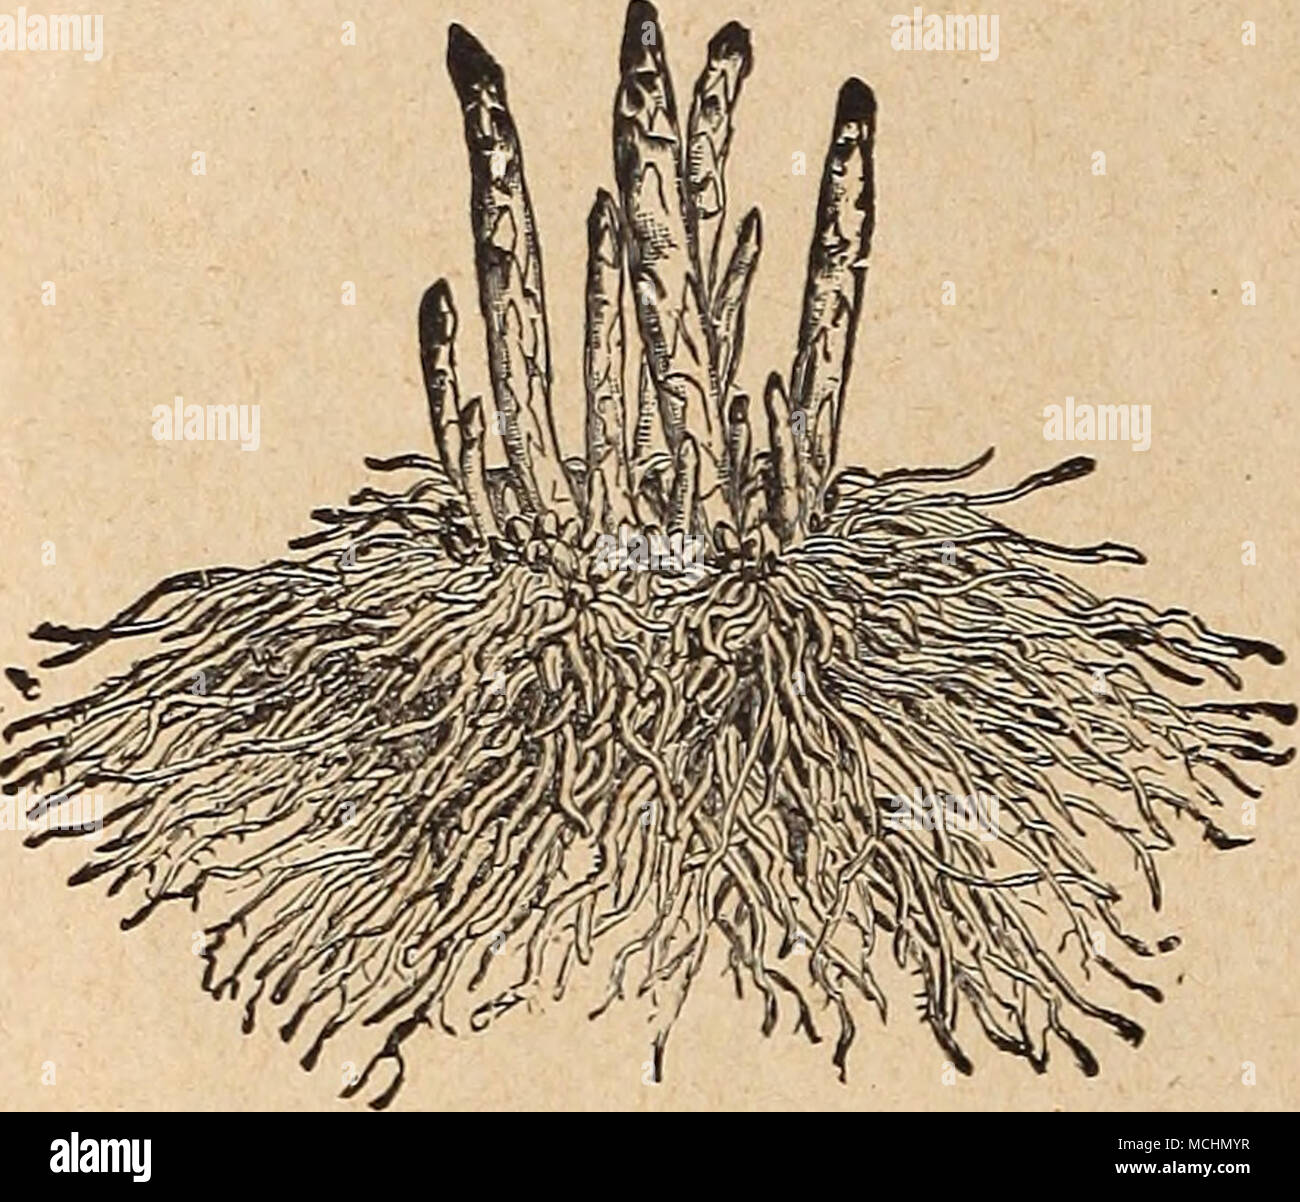 Asparagus Root Fab^£ac5JM fa Vegetable Plants, Roots and Herbs While